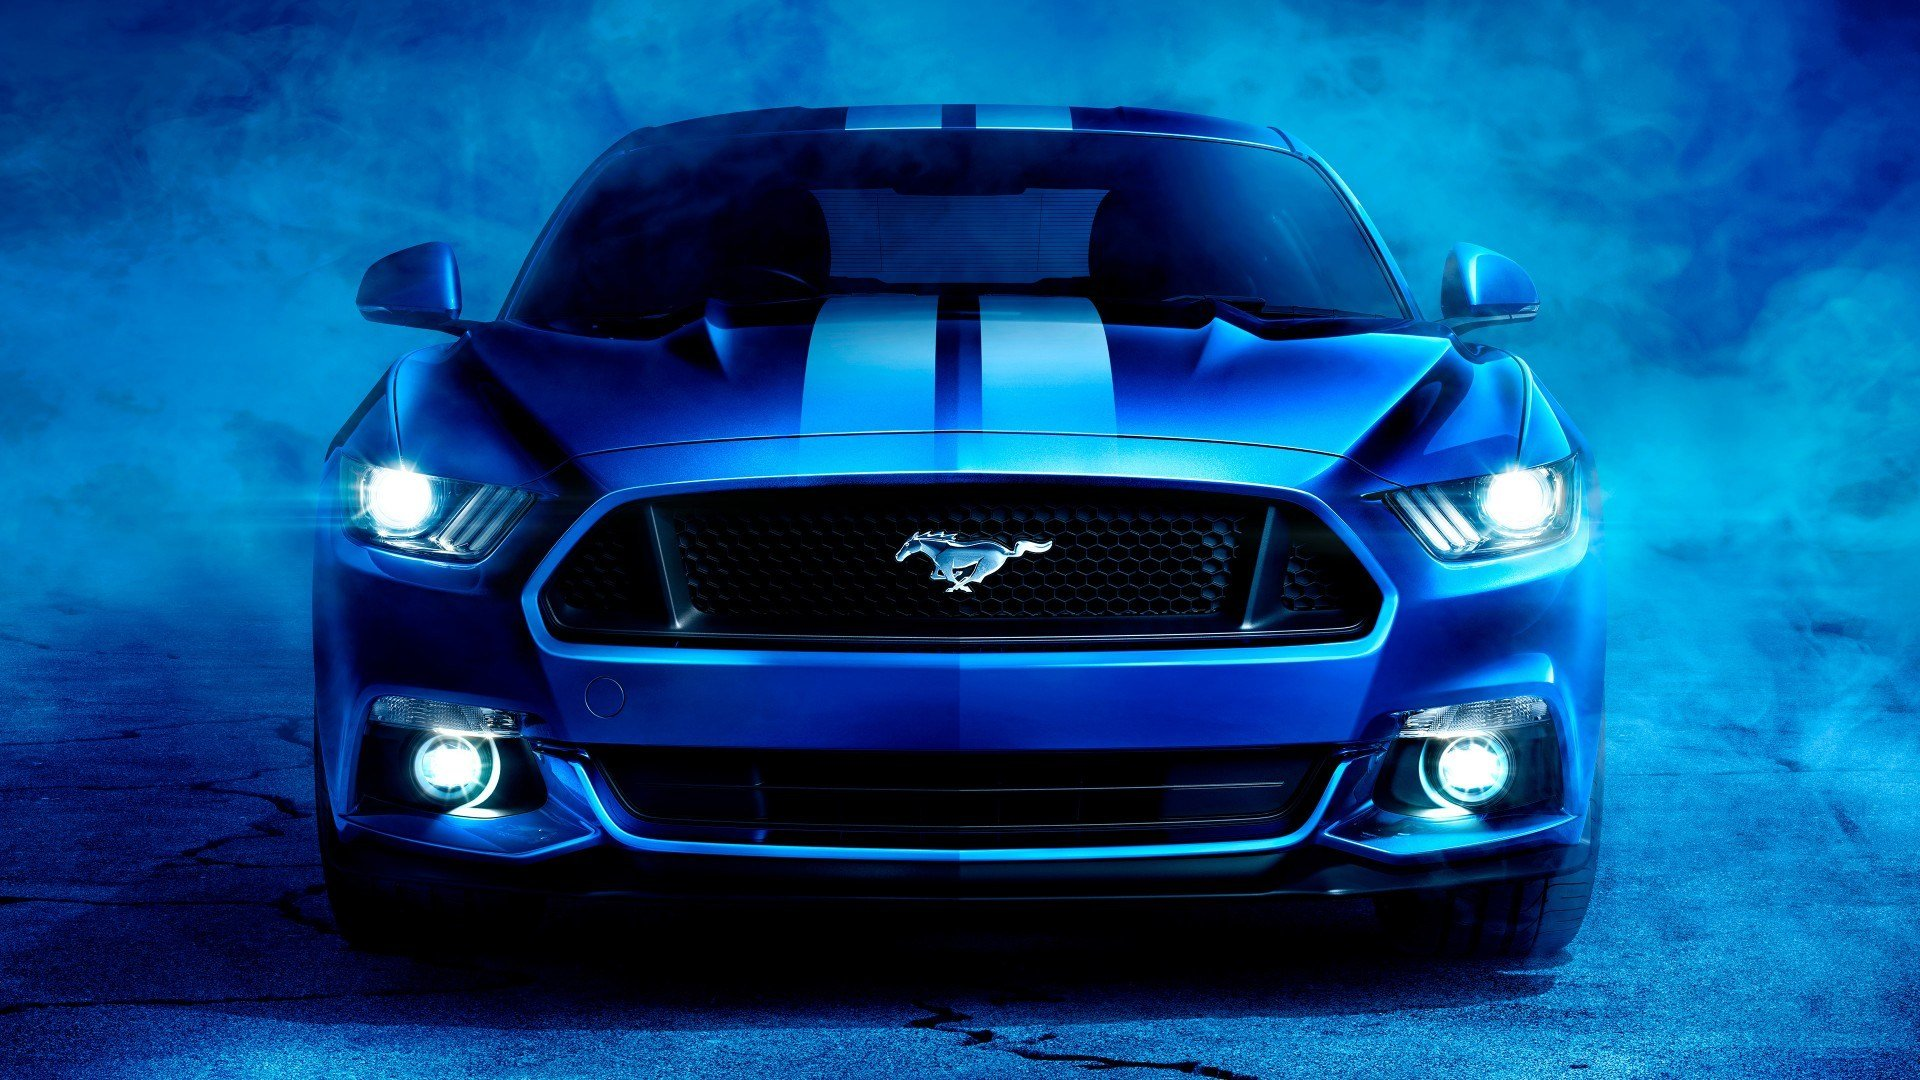 New Ford Mustang 4K Wallpaper Hd Car Wallpapers Id 11175 On This Month